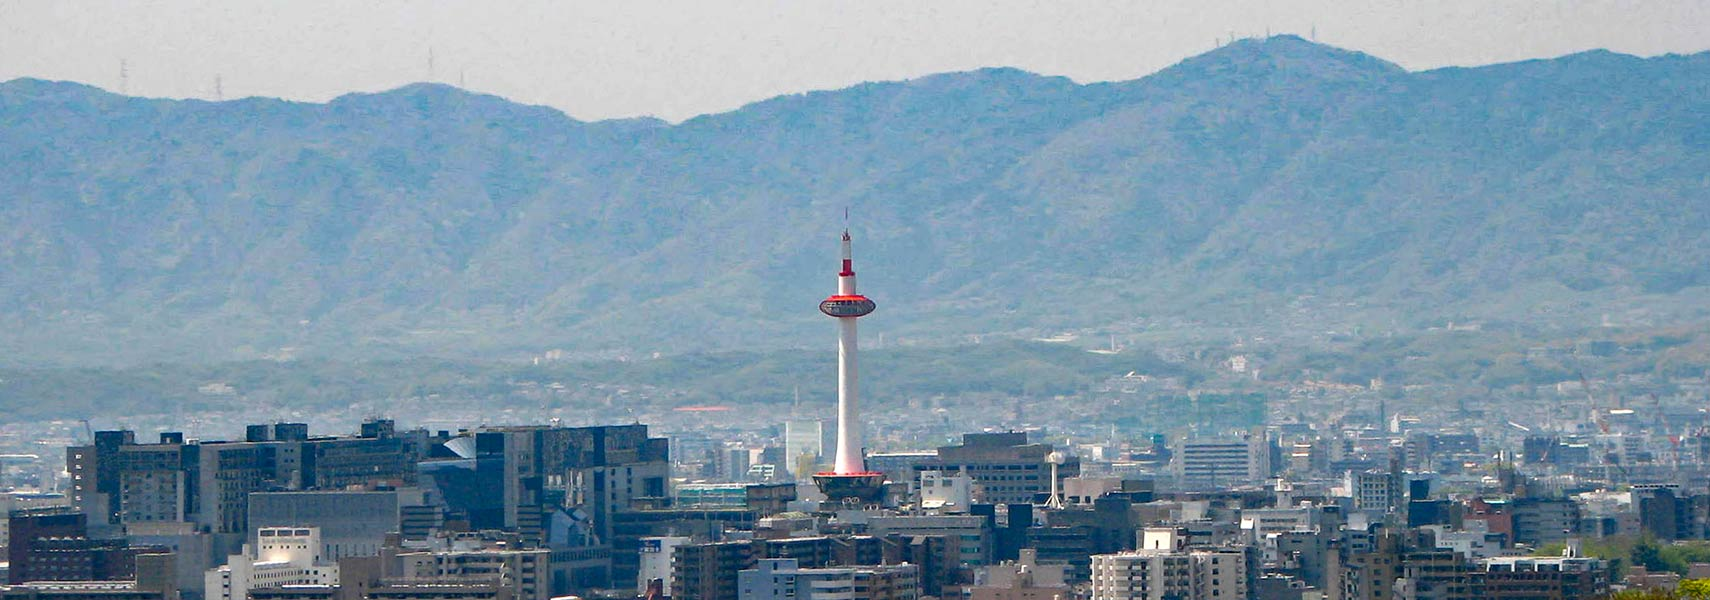 Kyoto City with Kyoto tower